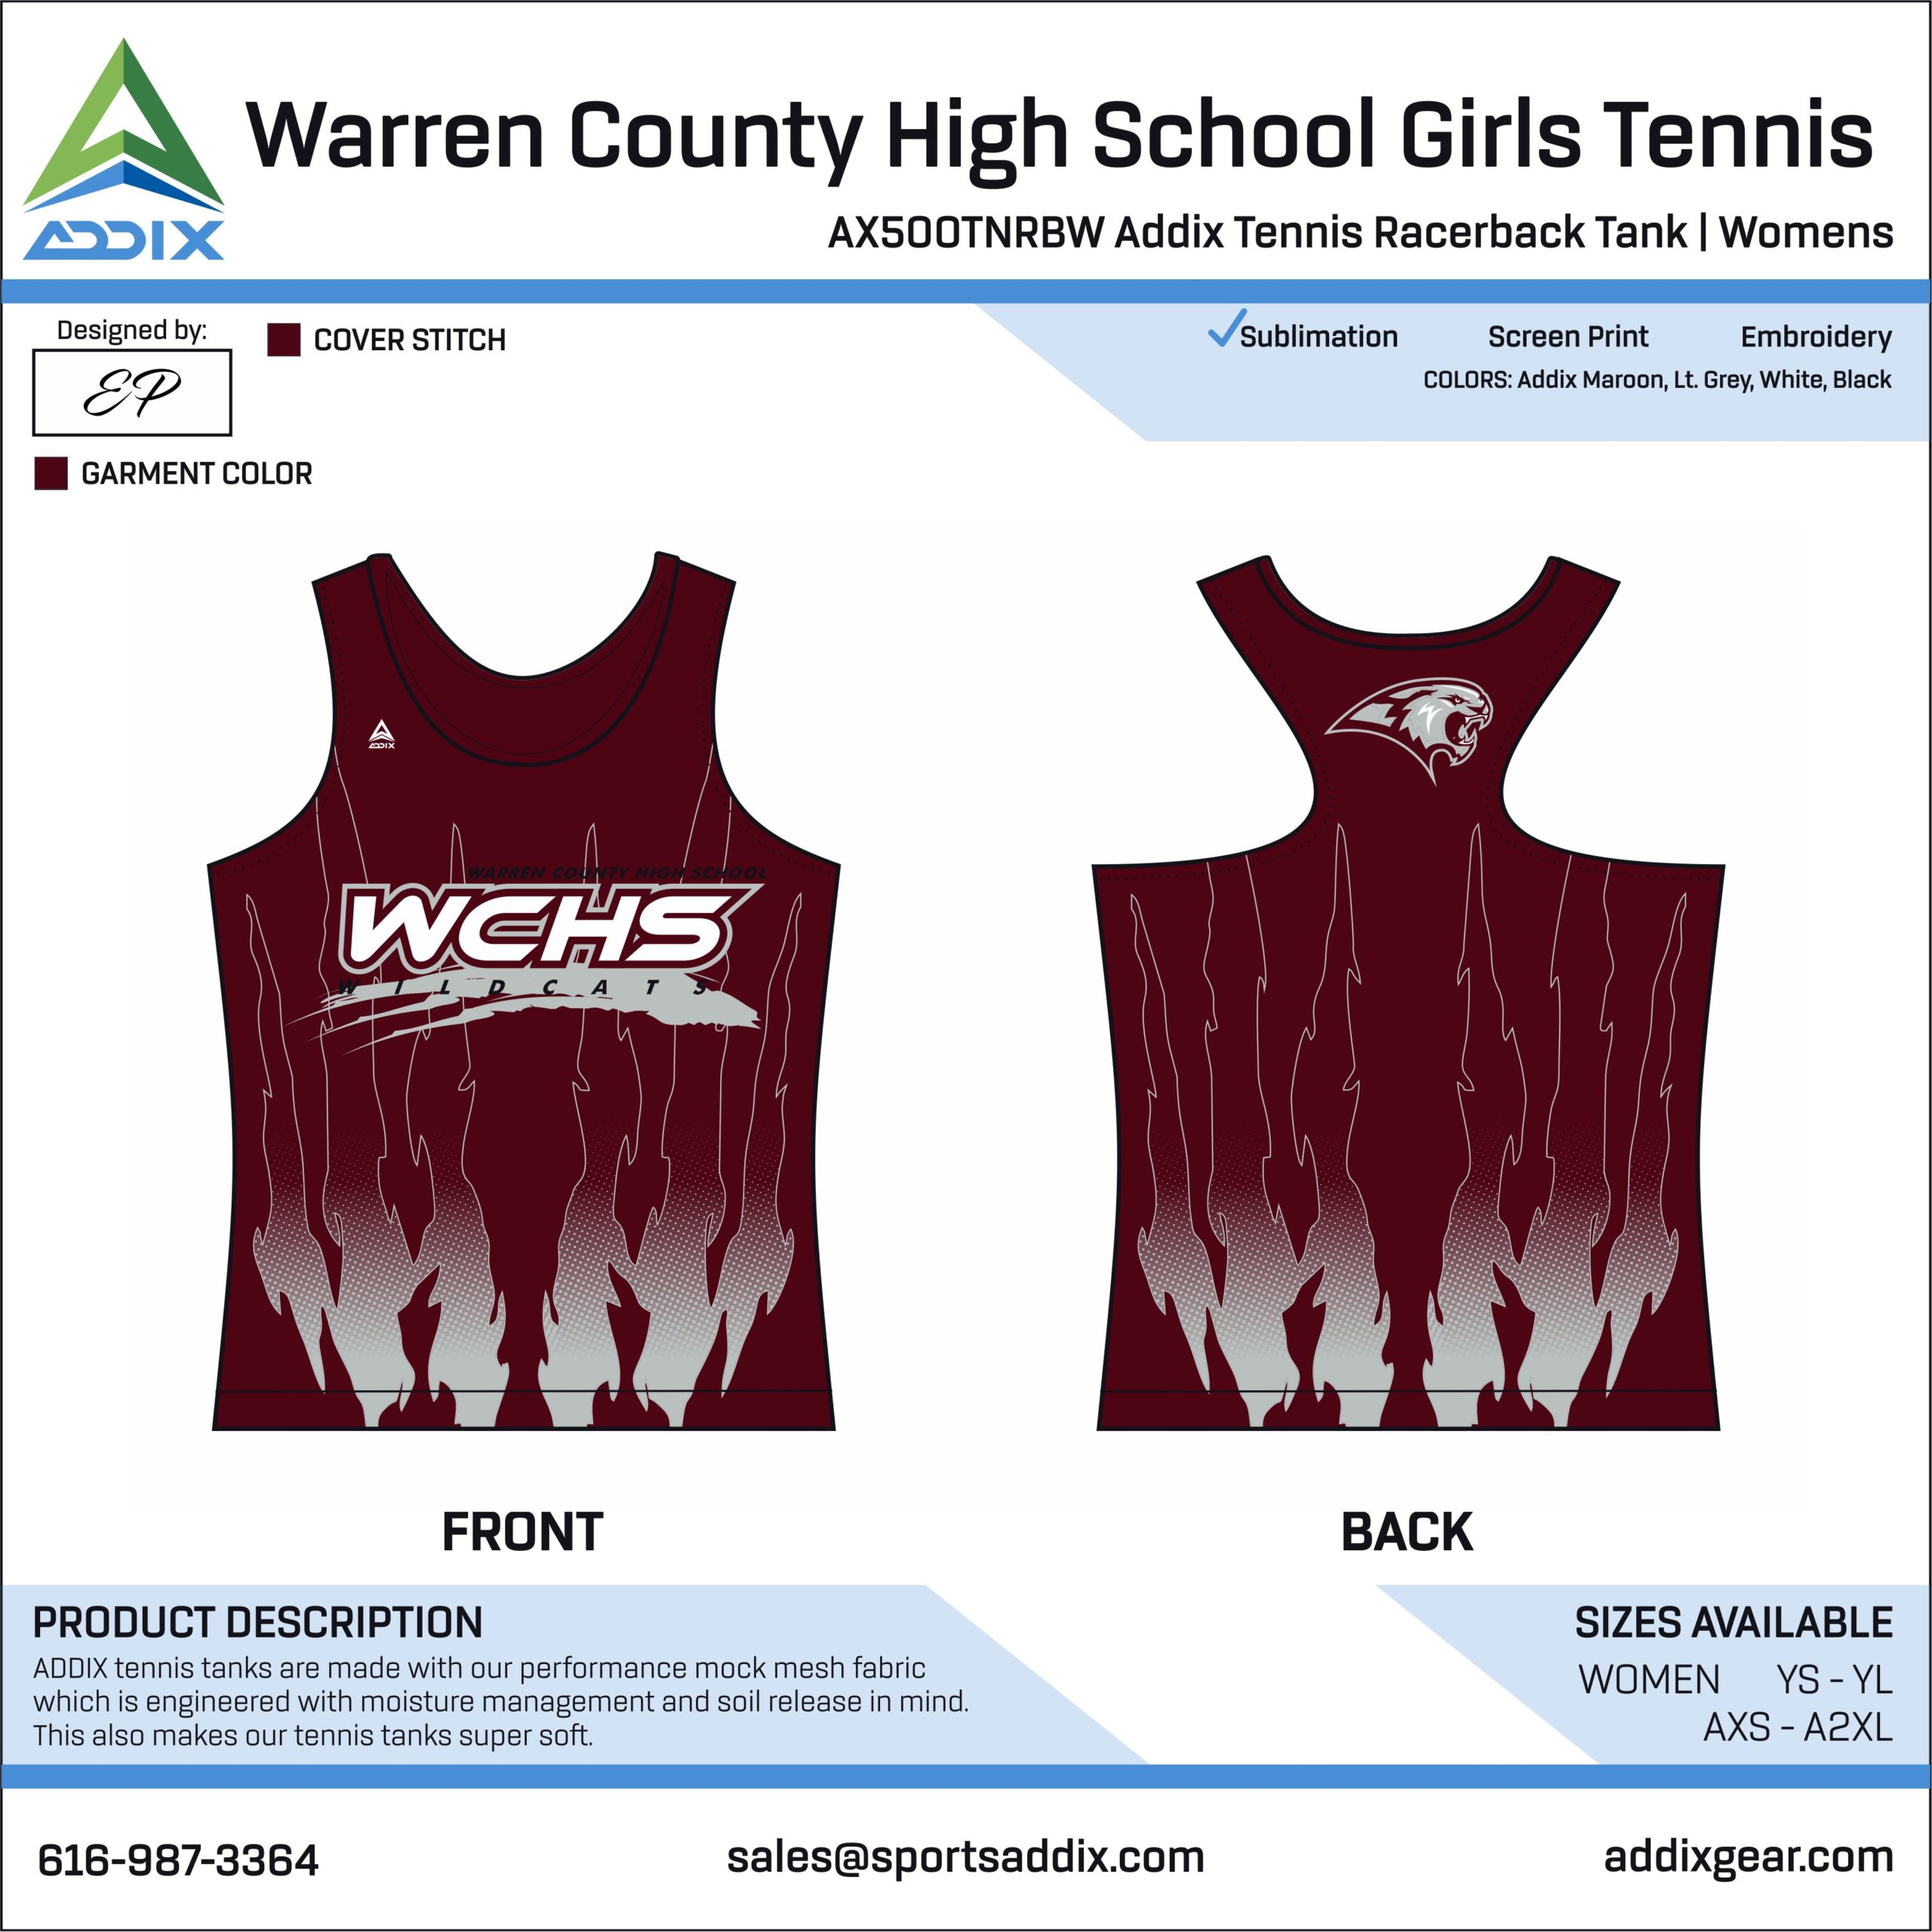 Warren County High School Girls Tennis Racerback